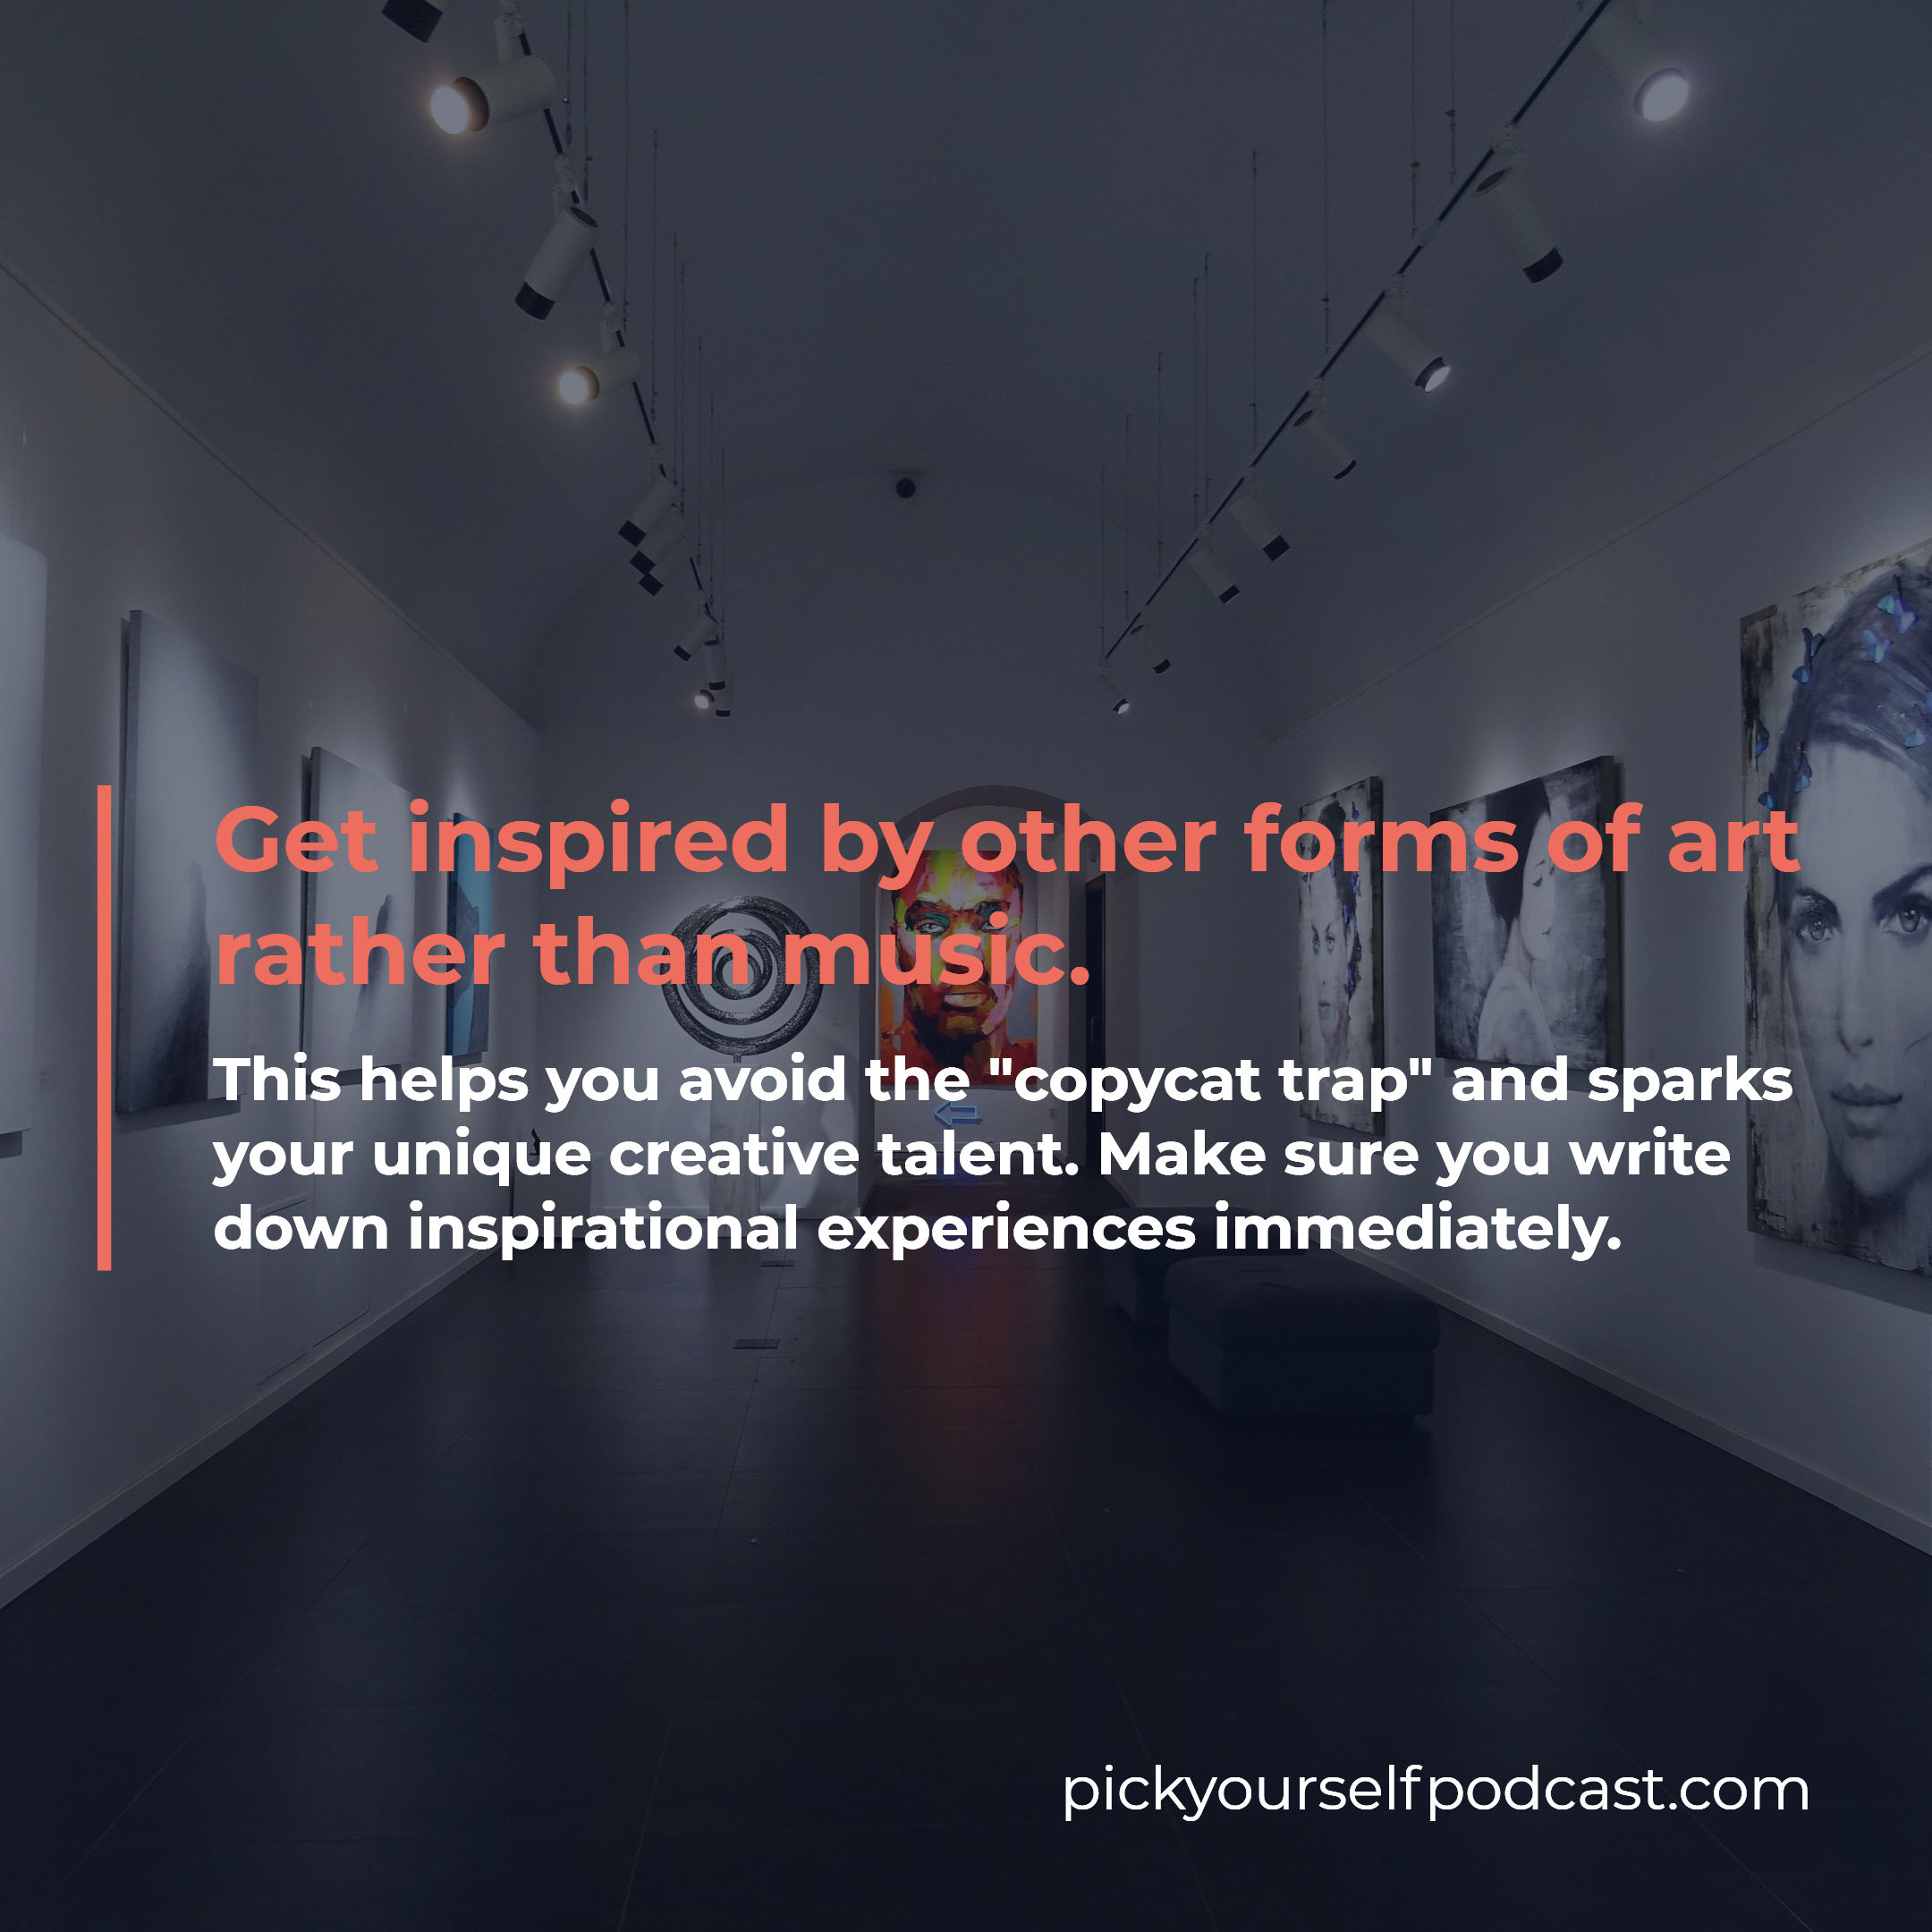 Finish more music visual 02. Get inspired by other forms of art rather than music.